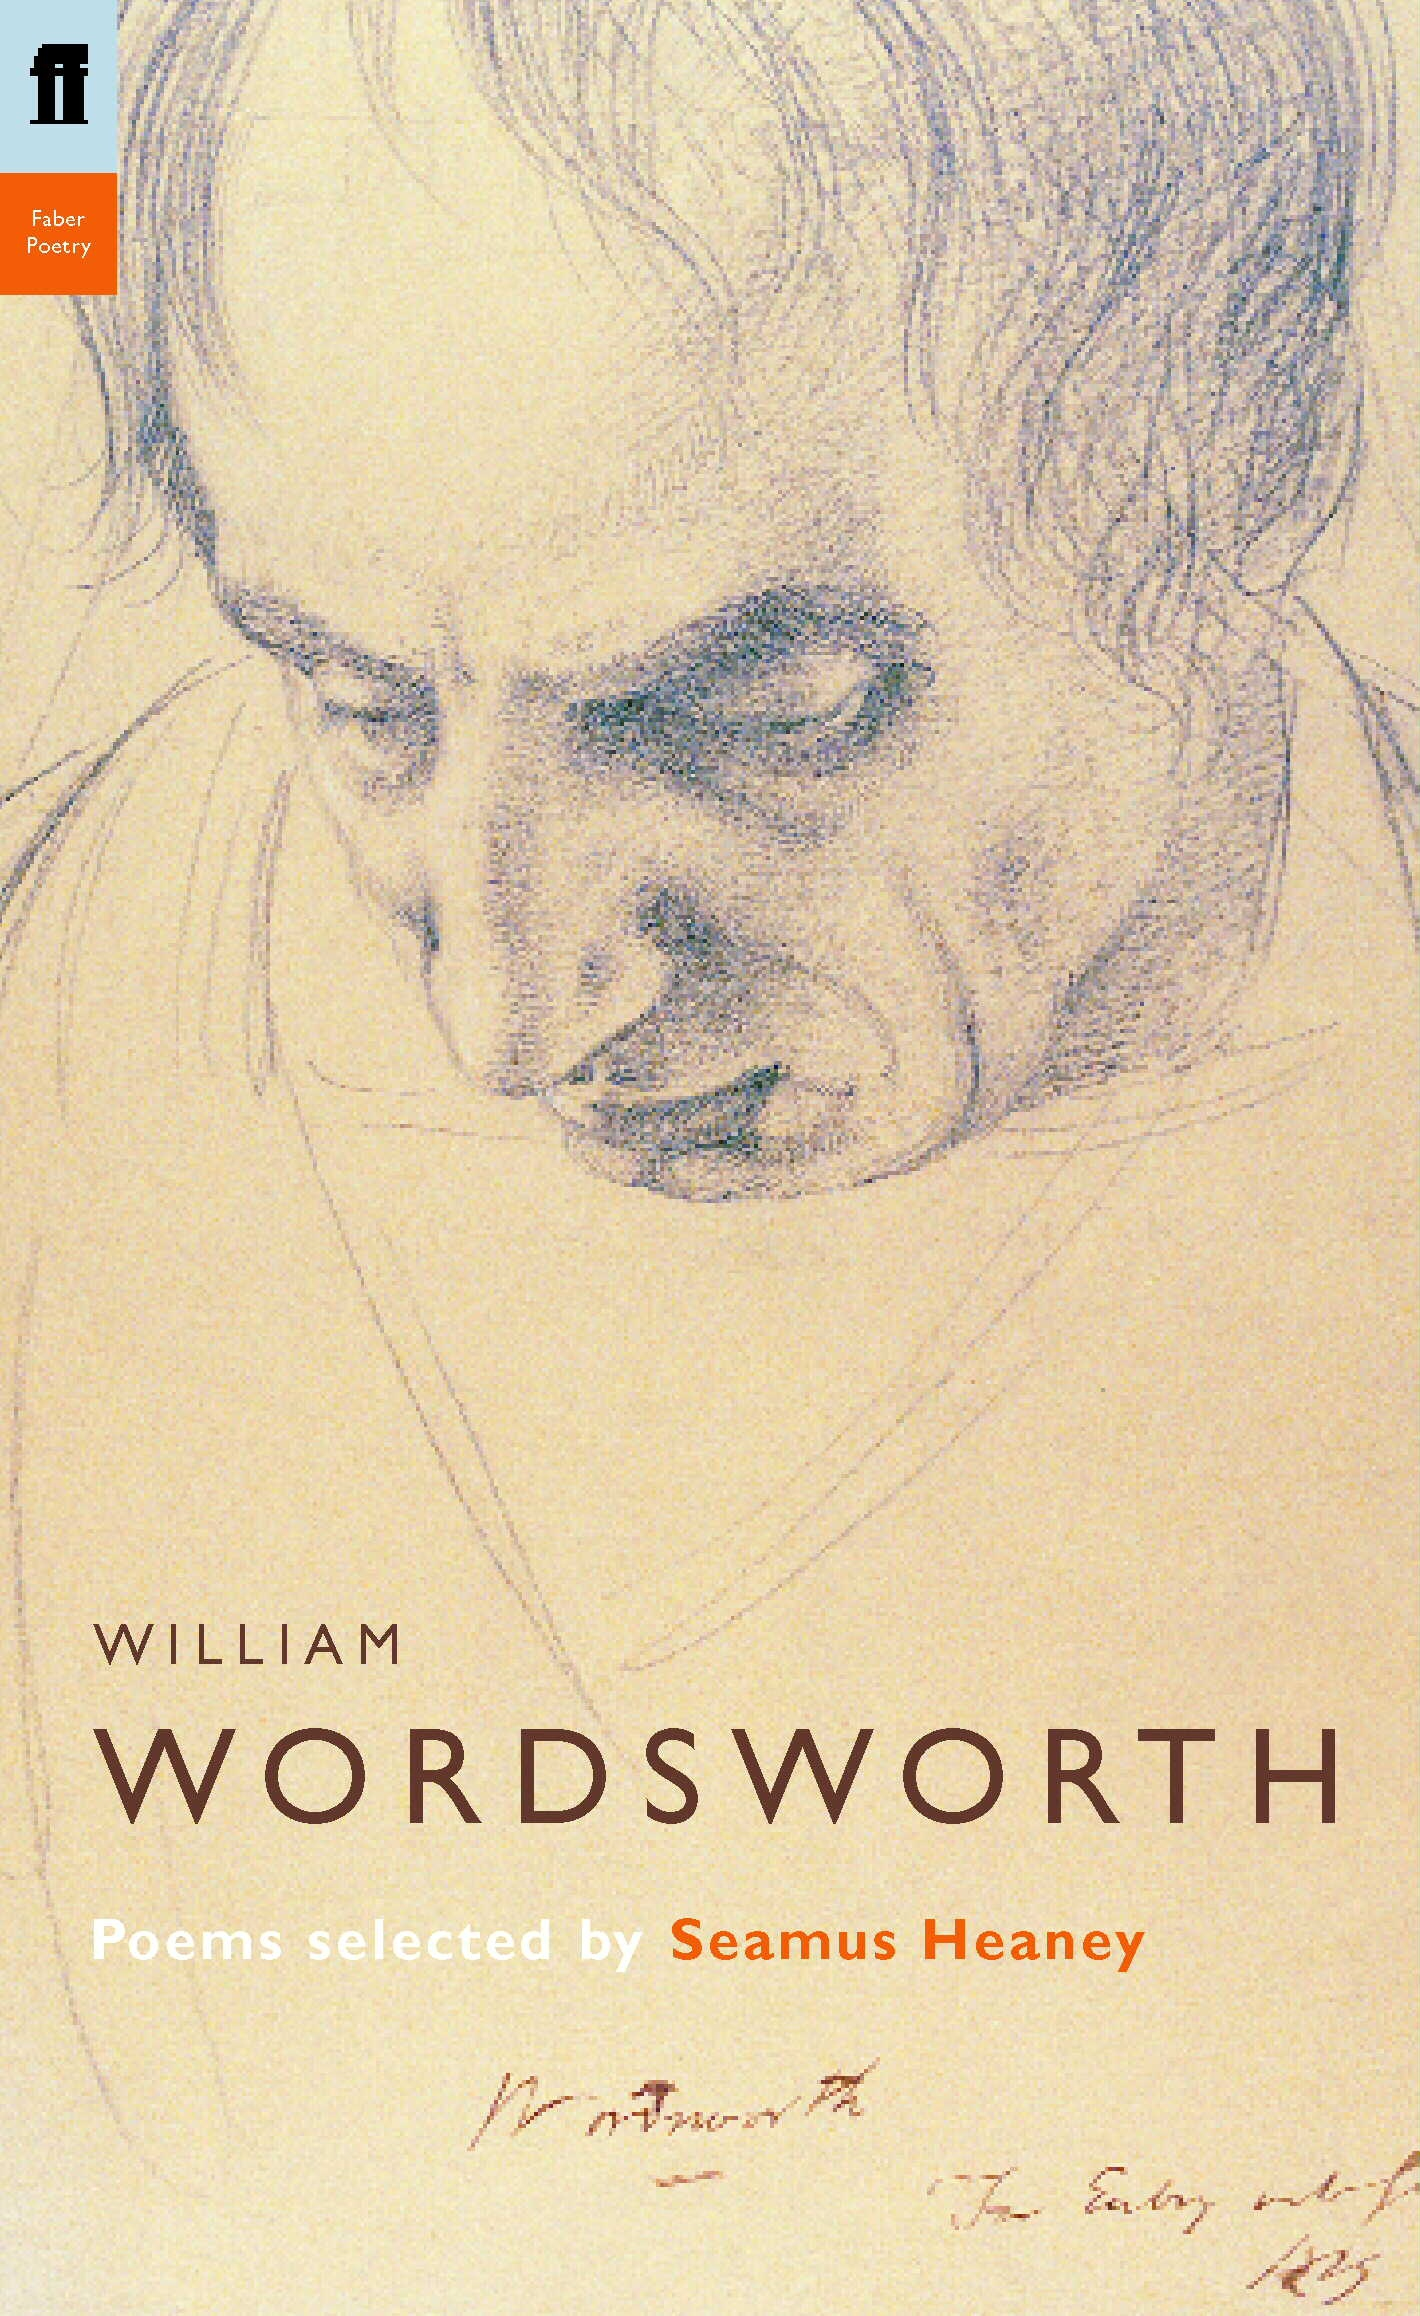 """resolution and independence by william wordsworth essay Various prose works of the poet william wordsworth solitary reaper,"""" """"resolution and independence an essay on wordsworth's major."""